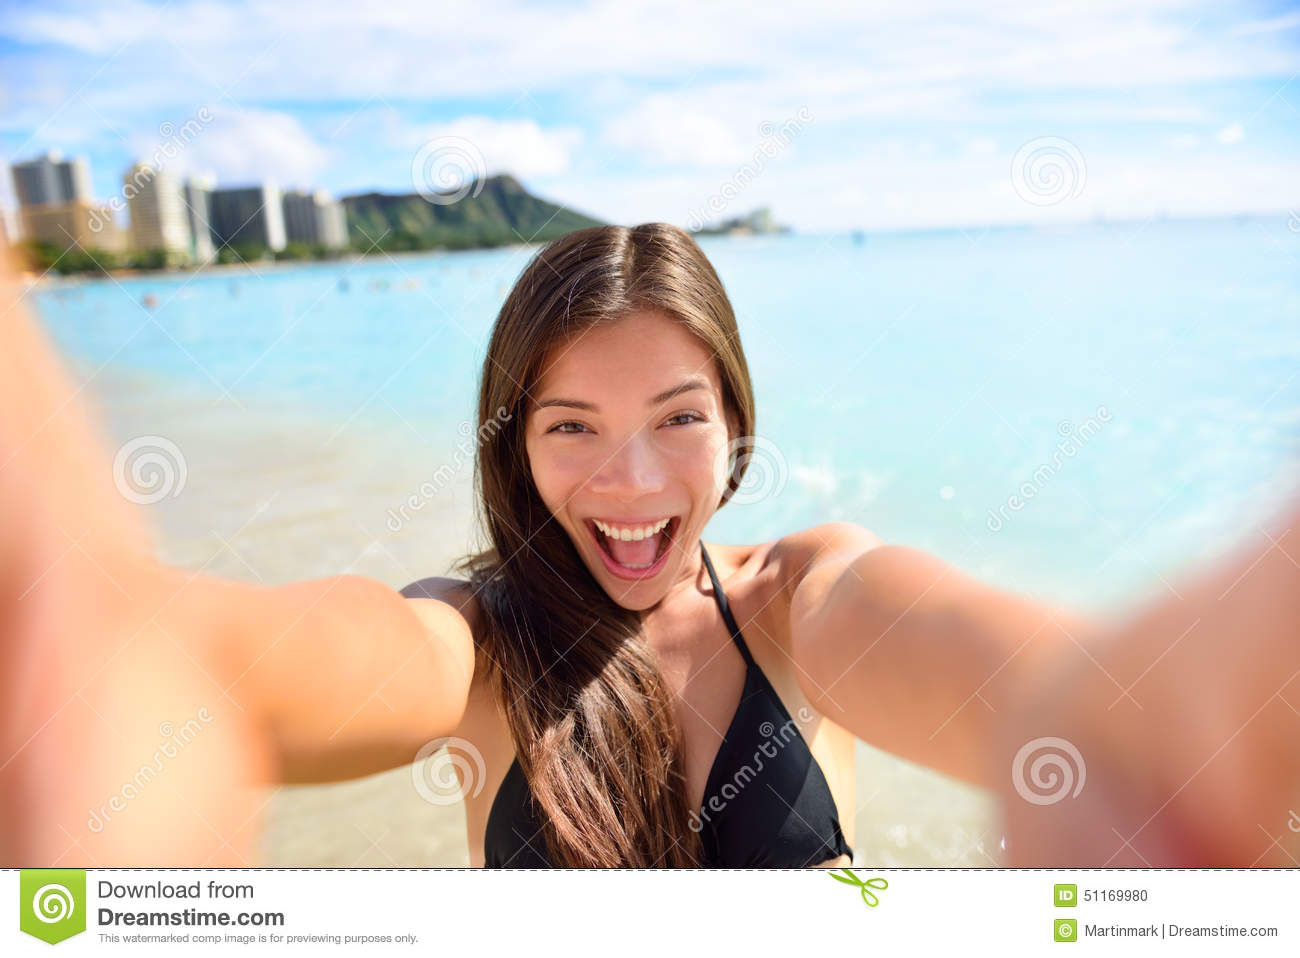 Selfie fun woman taking picture at beach vacation